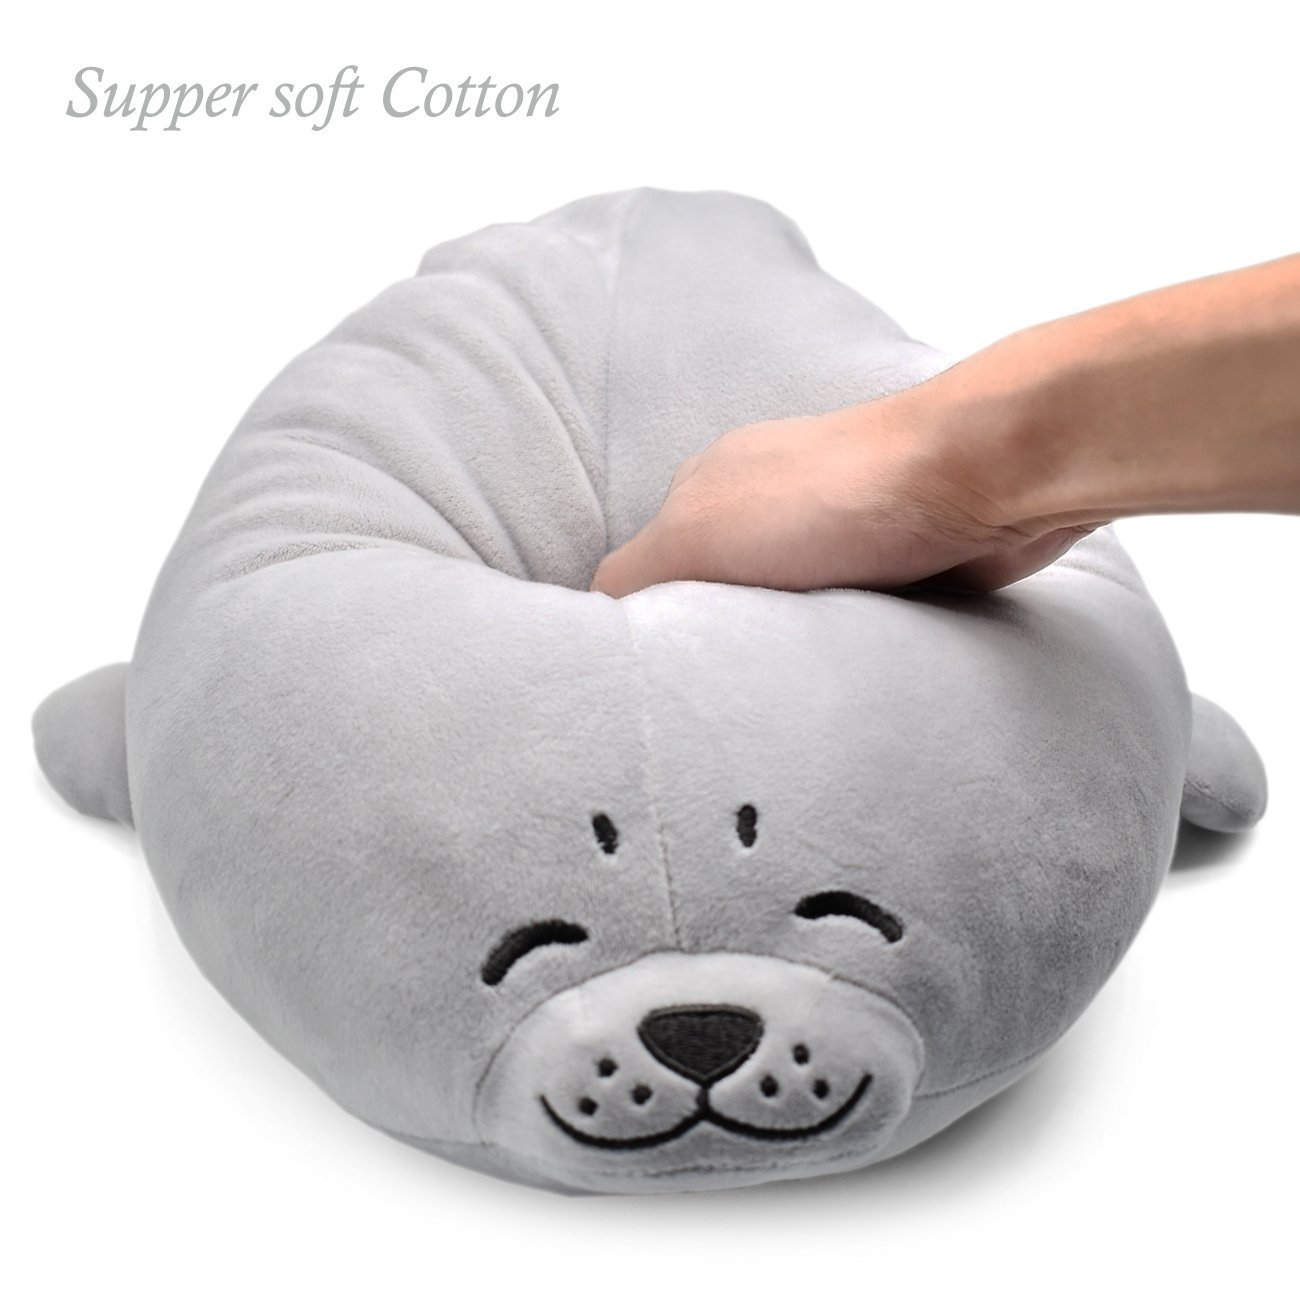 Sunyou Plush Cute Seal Pillow - Stuffed Cotton Soft Animal Toy Grey 27.5 inch/70cm (Large) Gift For Friend Kid/Adult On Friendship Day by Sunyou (Image #3)